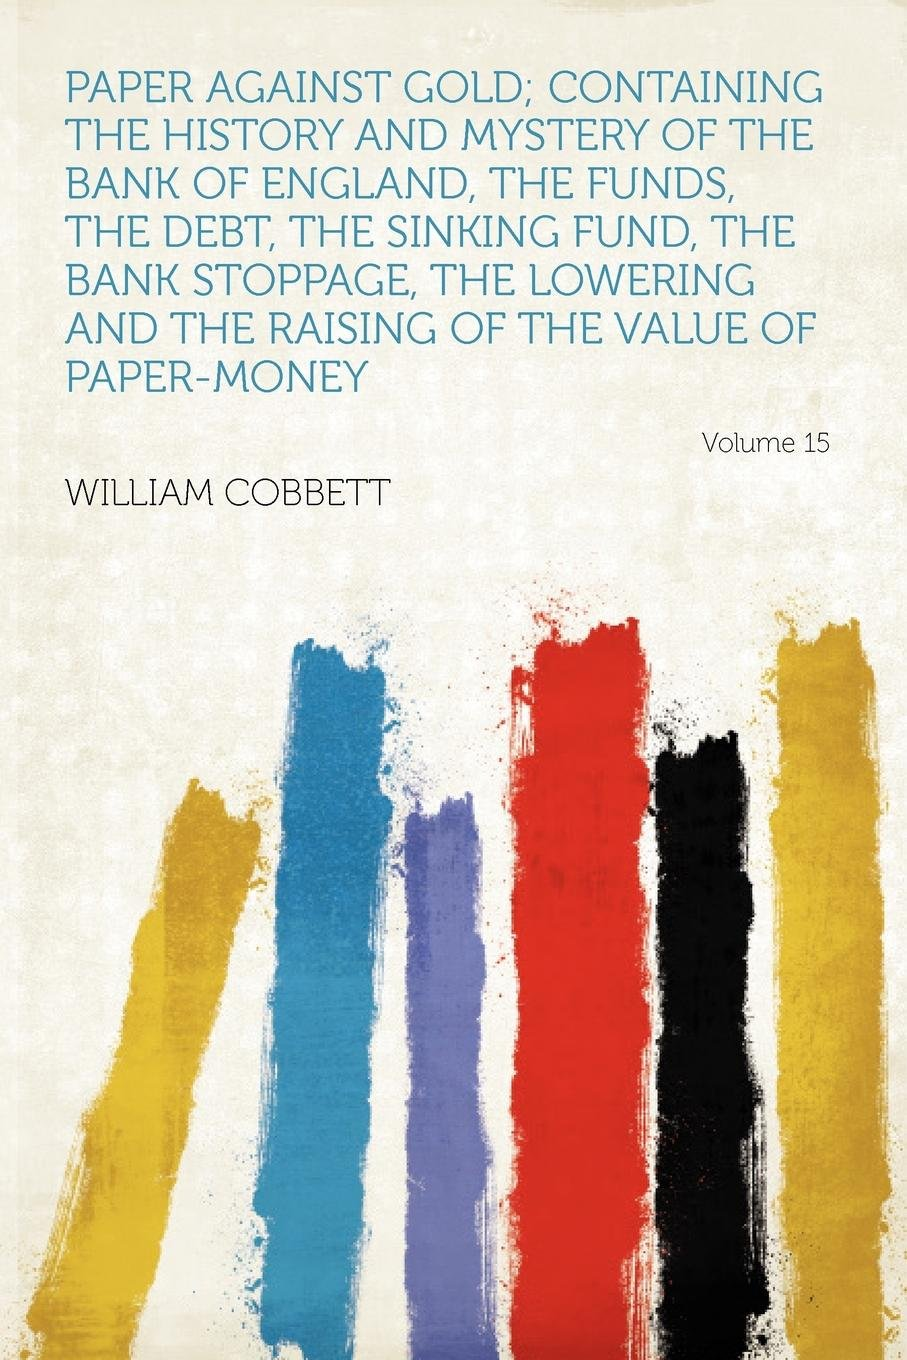 Download Paper Against Gold; Containing the History and Mystery of the Bank of England, the Funds, the Debt, the Sinking Fund, the Bank Stoppage, the Lowering Raising of the Value of Paper-money Volume 15 ebook